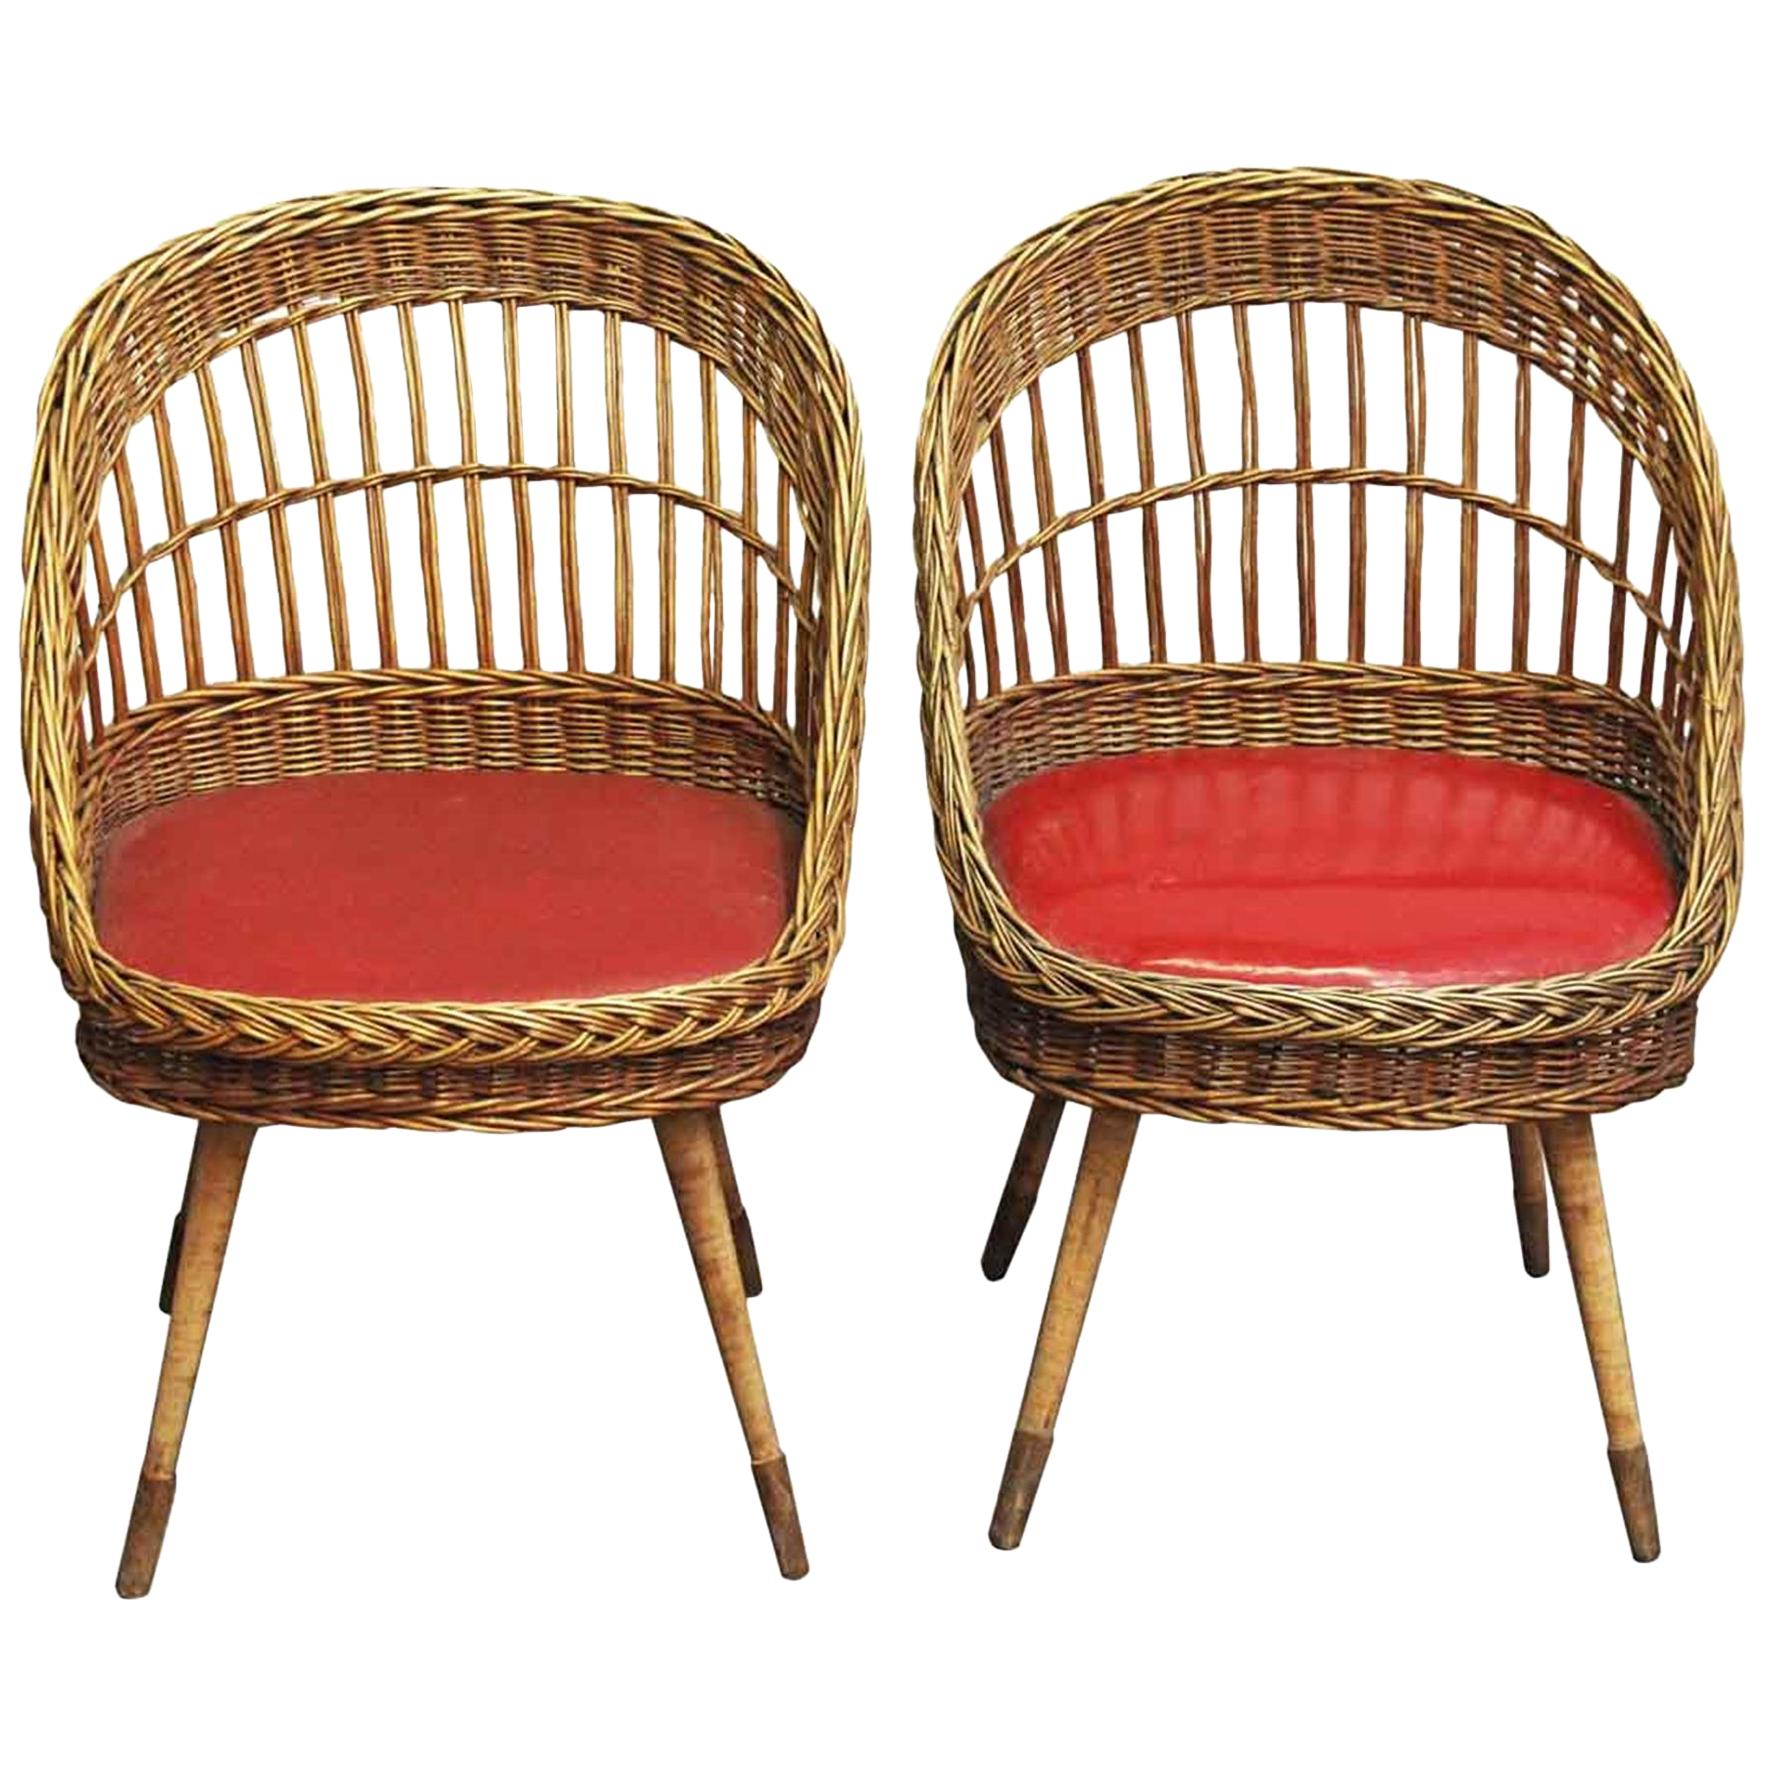 1980s Pair of French Red Rattan Chairs